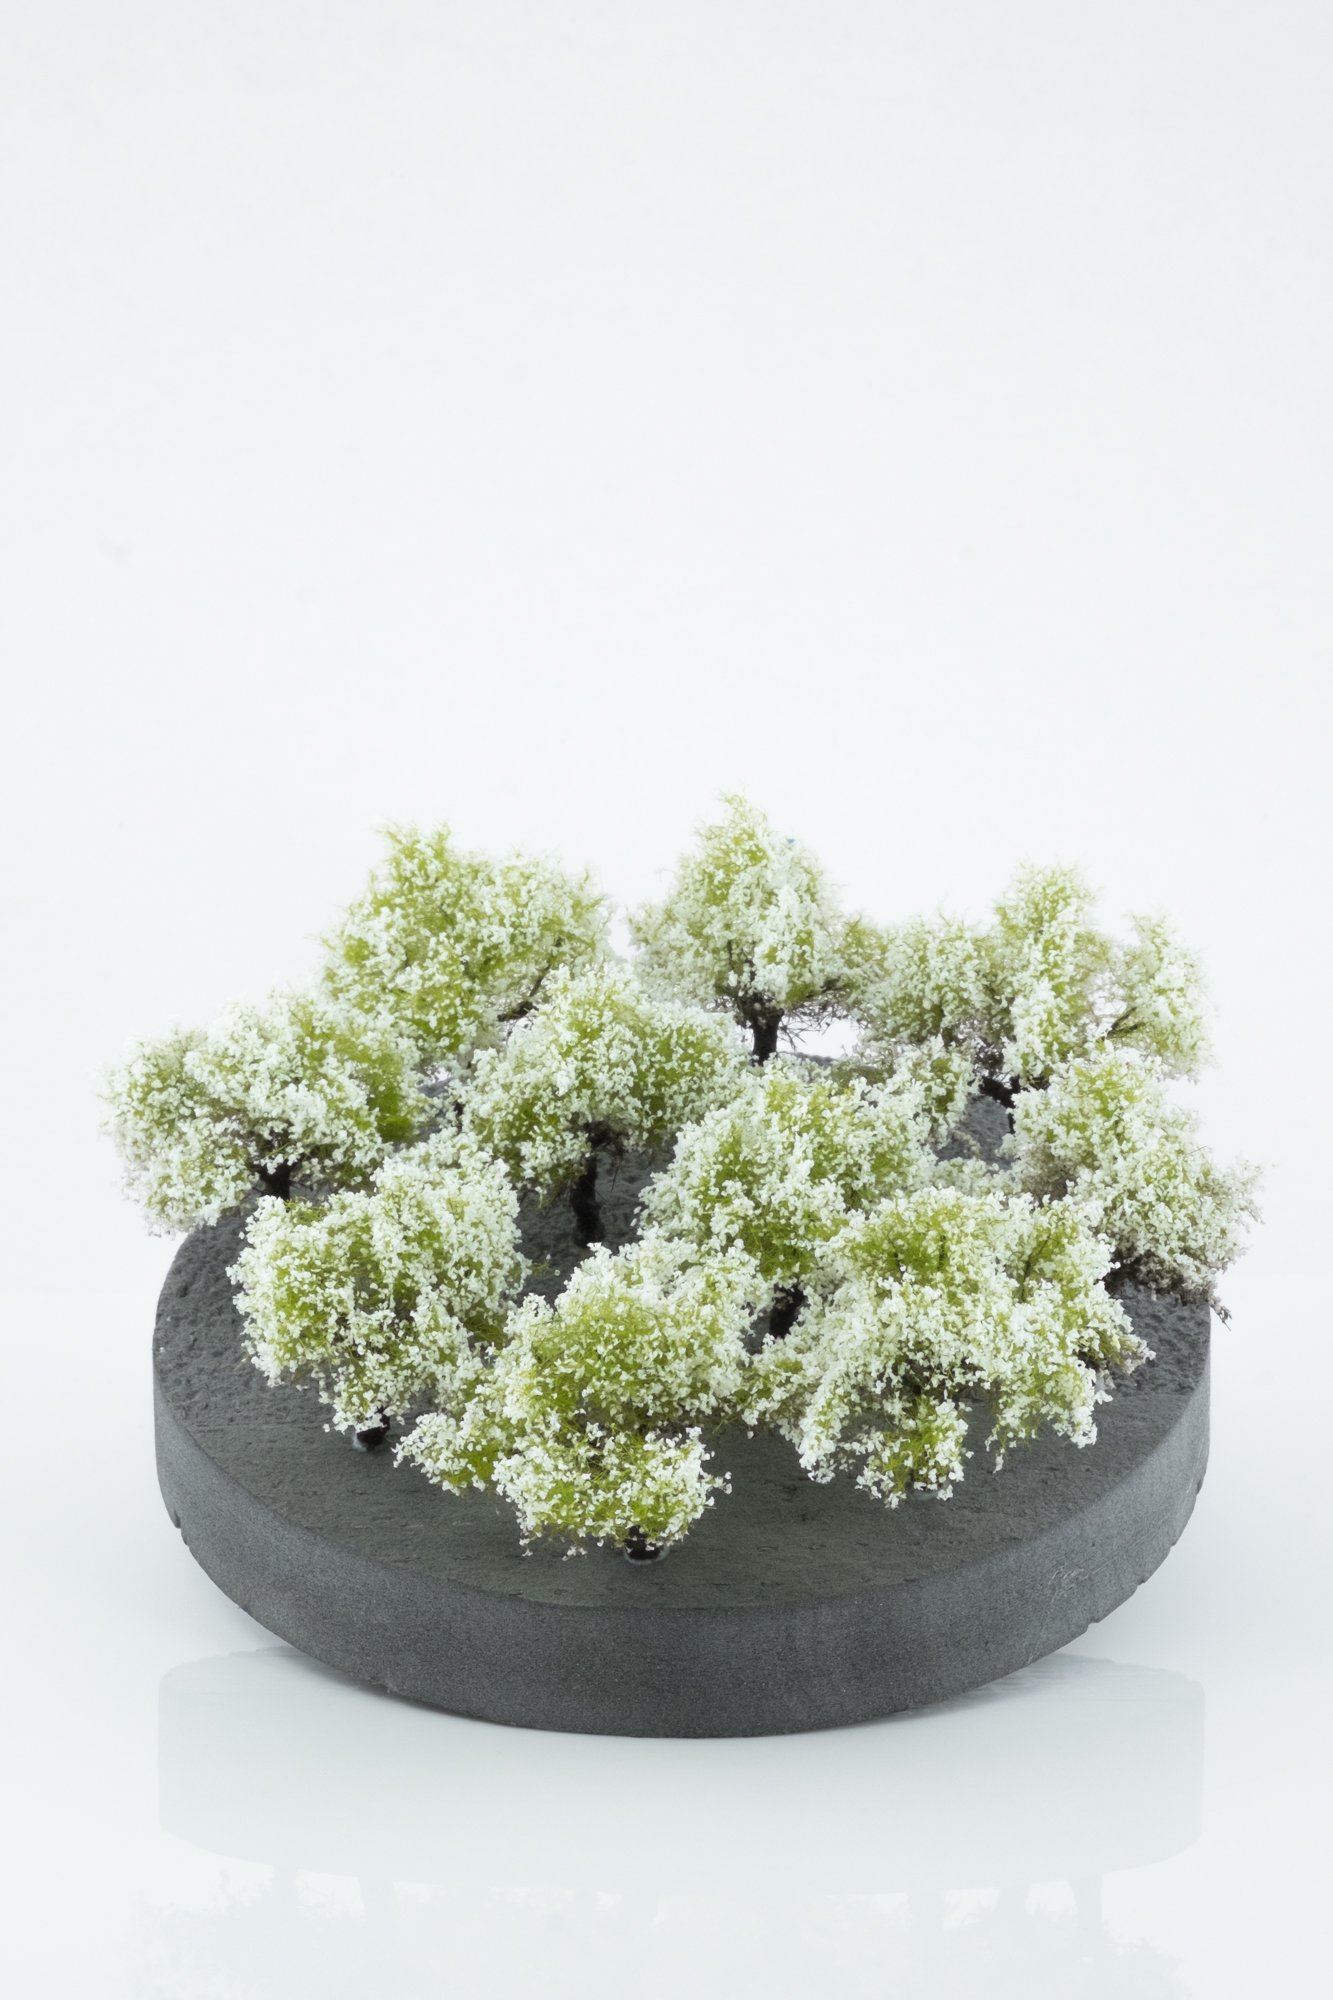 Ten pieces, regular white model bushes. Size between 2 and 4 cm. Made from high quality model supplies by Primo Models.